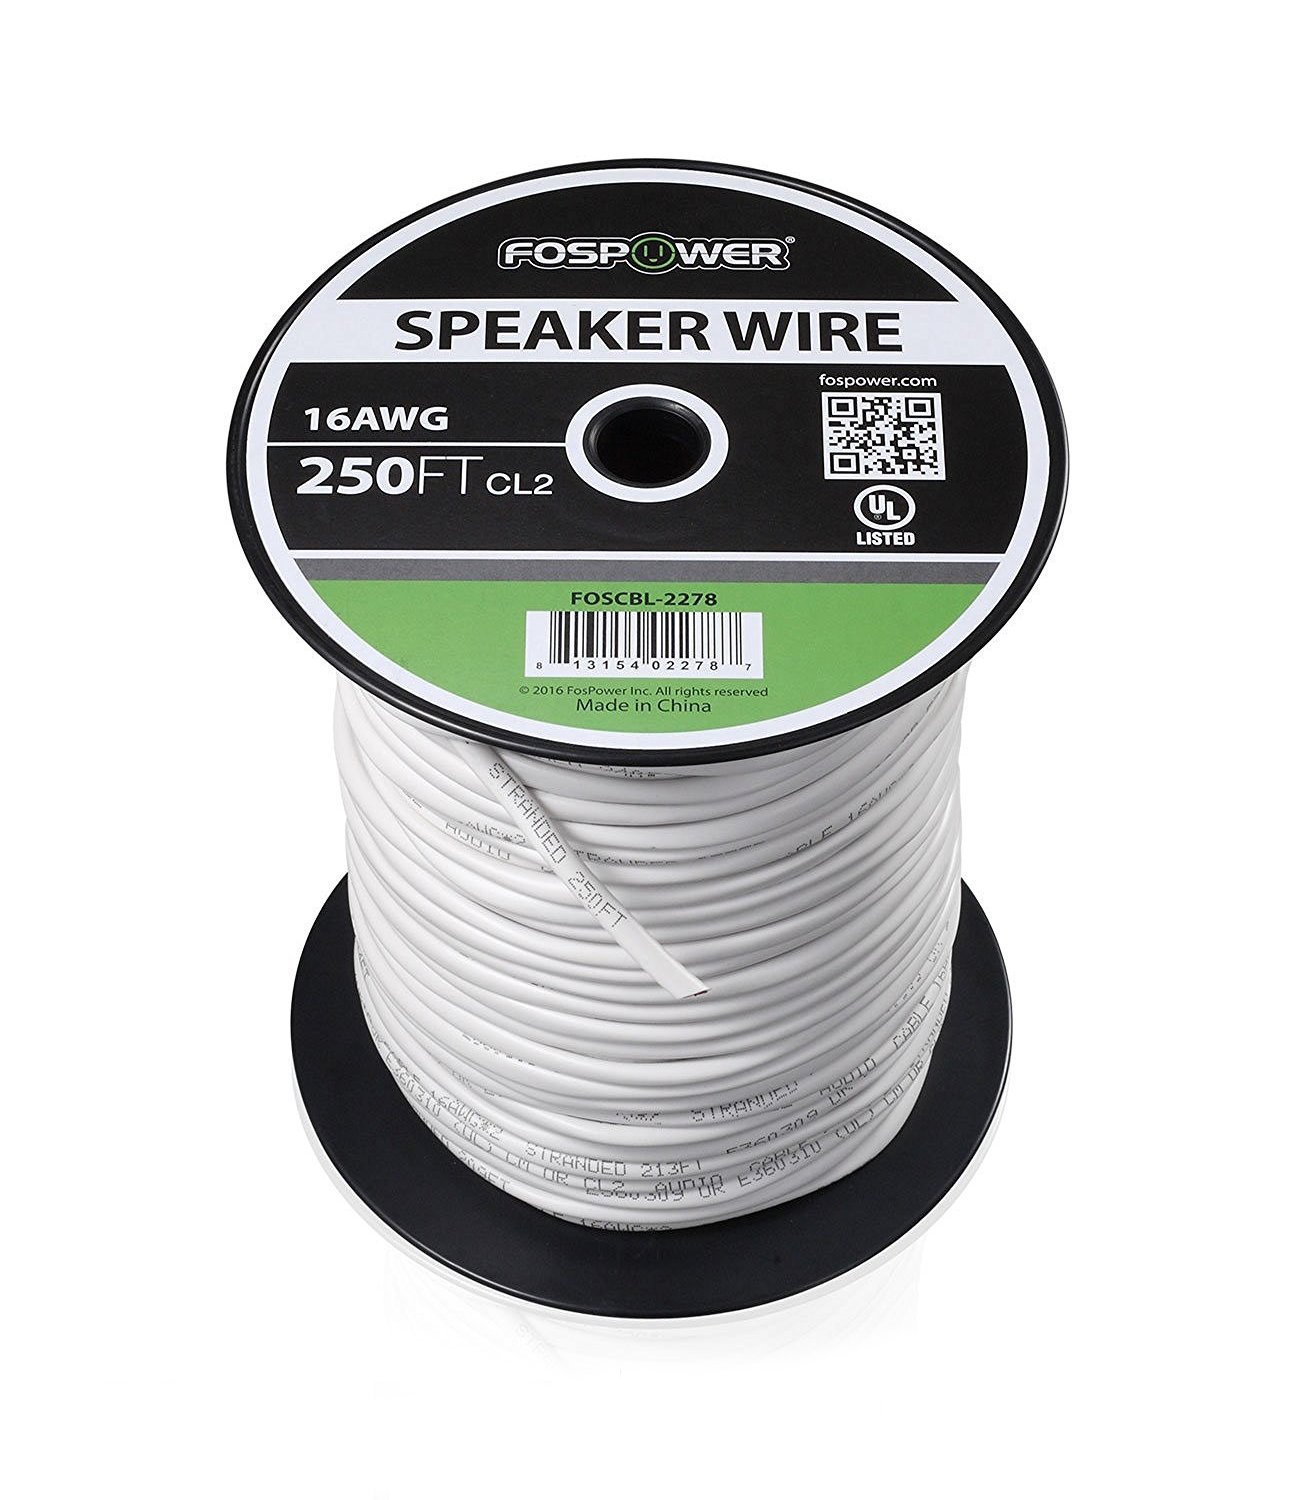 FosPower 16 Gauge Speaker Wire 250FT, CL2 Rated 16AWG 2-Conductor In-Wall Speaker Wire Cable, Oxygen-Free Pure Copper - UL Listed for In-Wall Installation